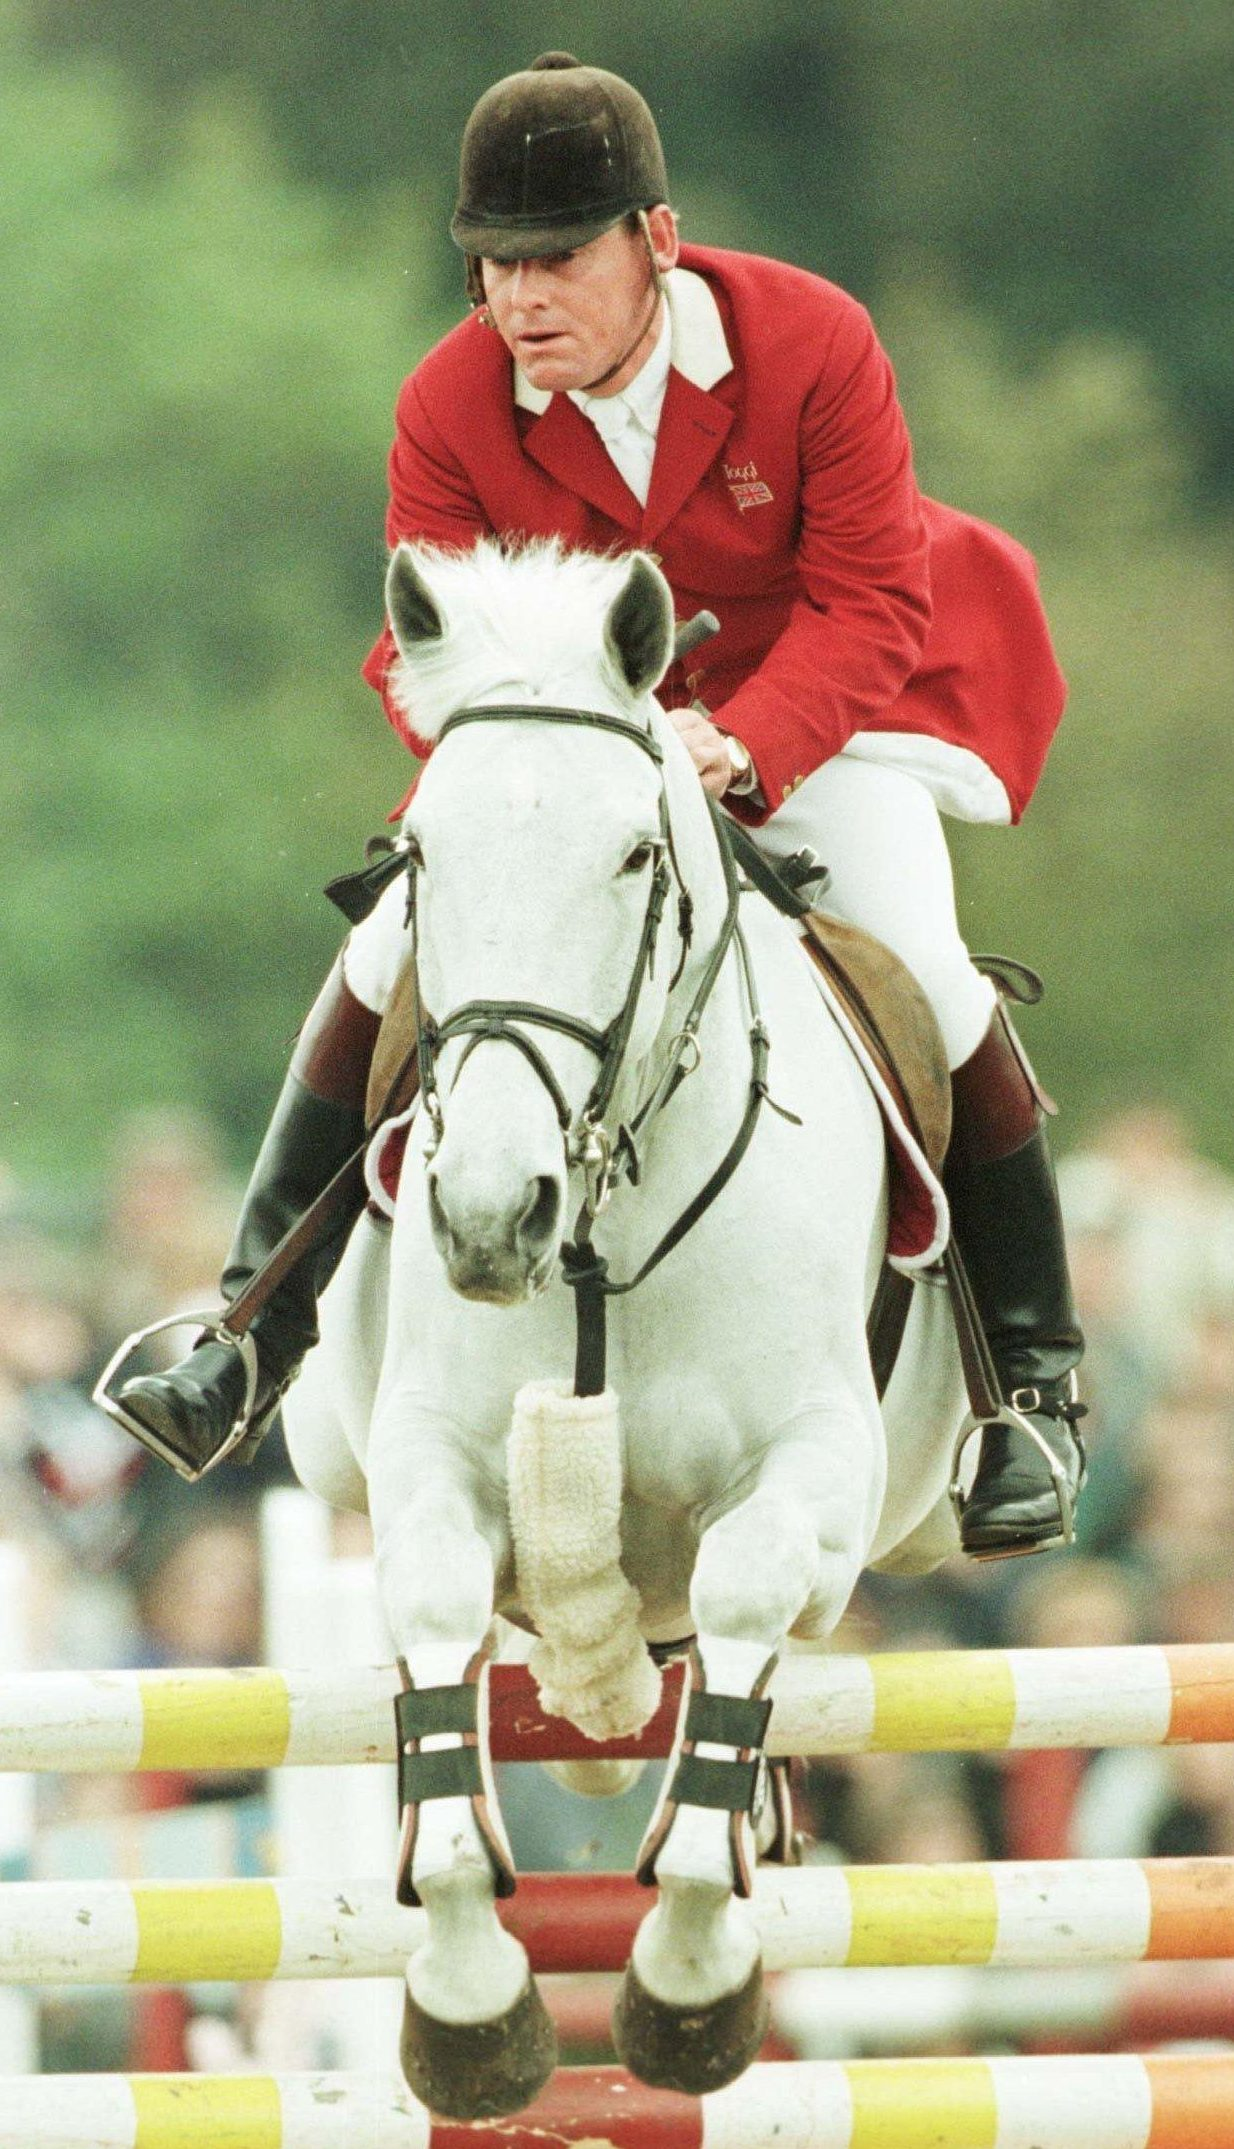 Stockdale was a popular figure in the equestrian community and will be sorely missed